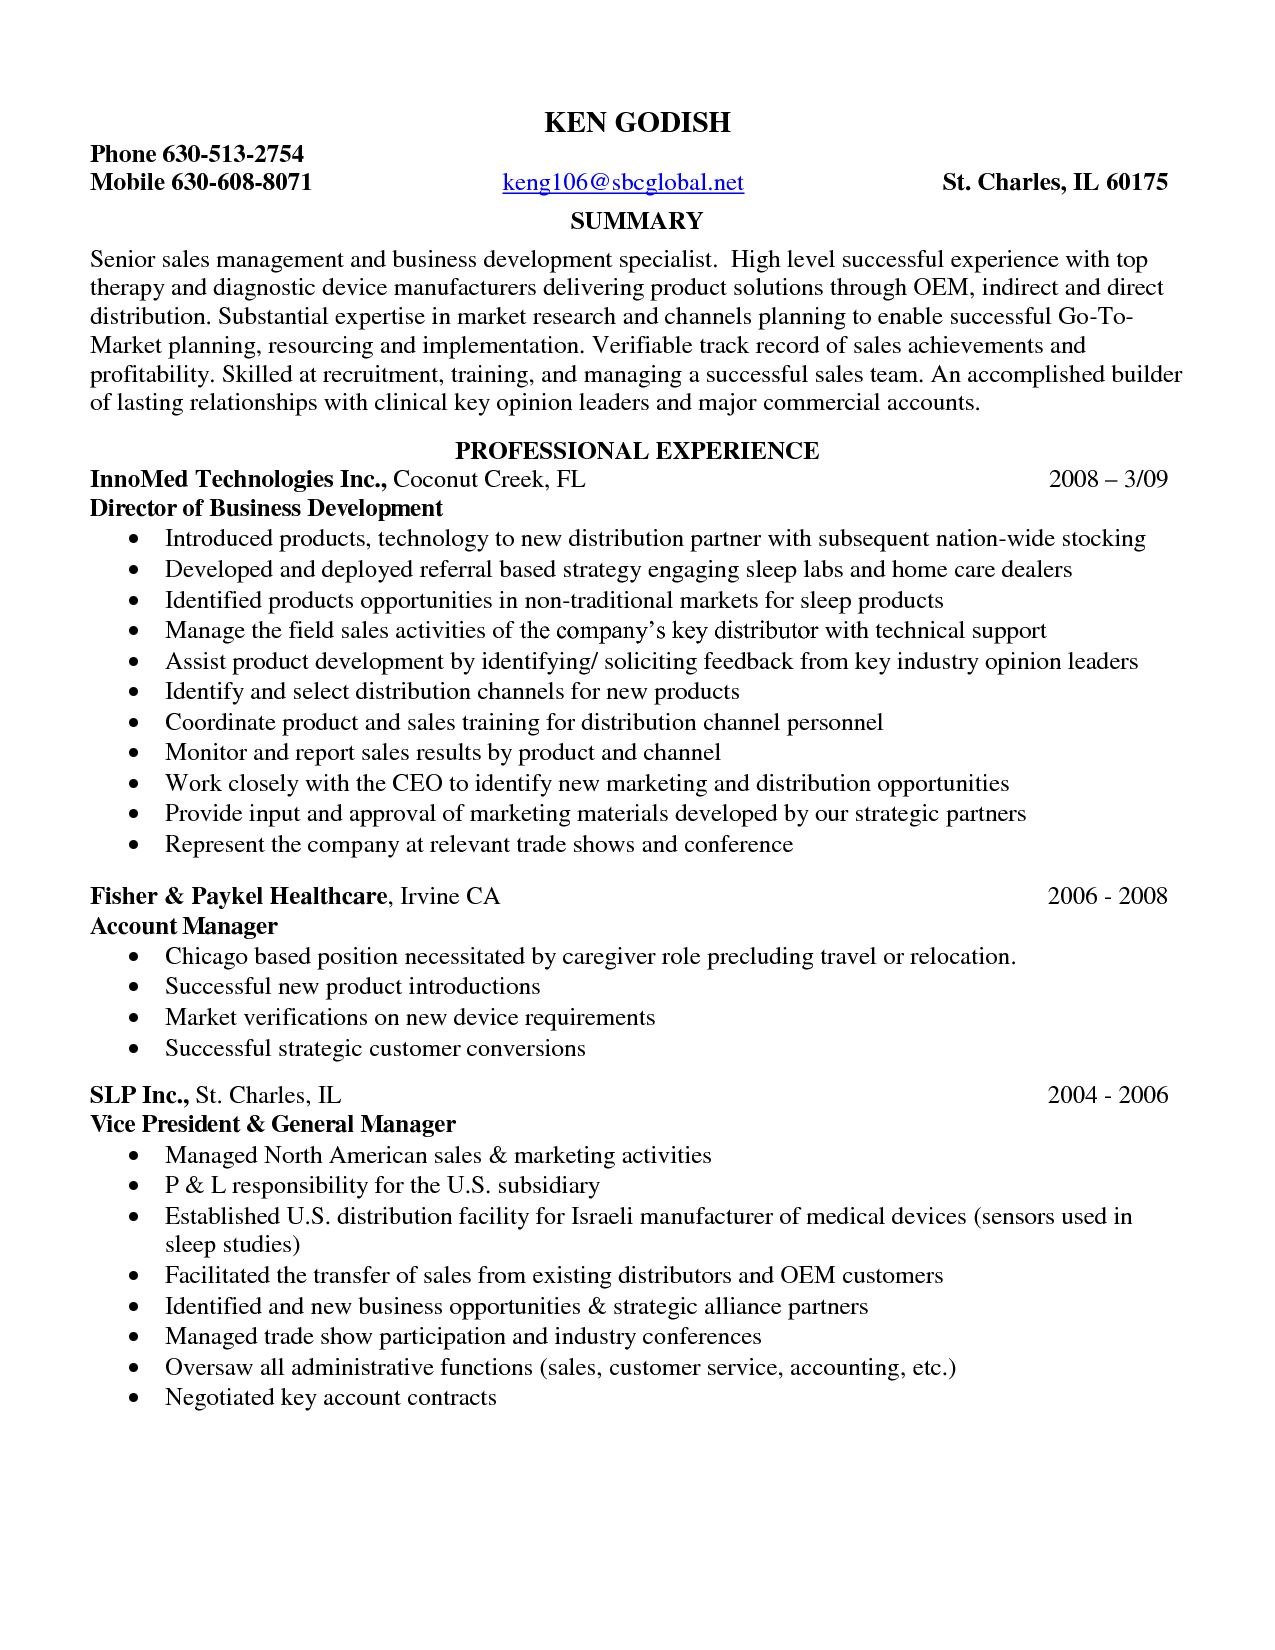 Sample Resume Entry Level Pharmaceutical Sales Sample Resume Entry Levelu2026  Resume For Pharmaceutical Sales